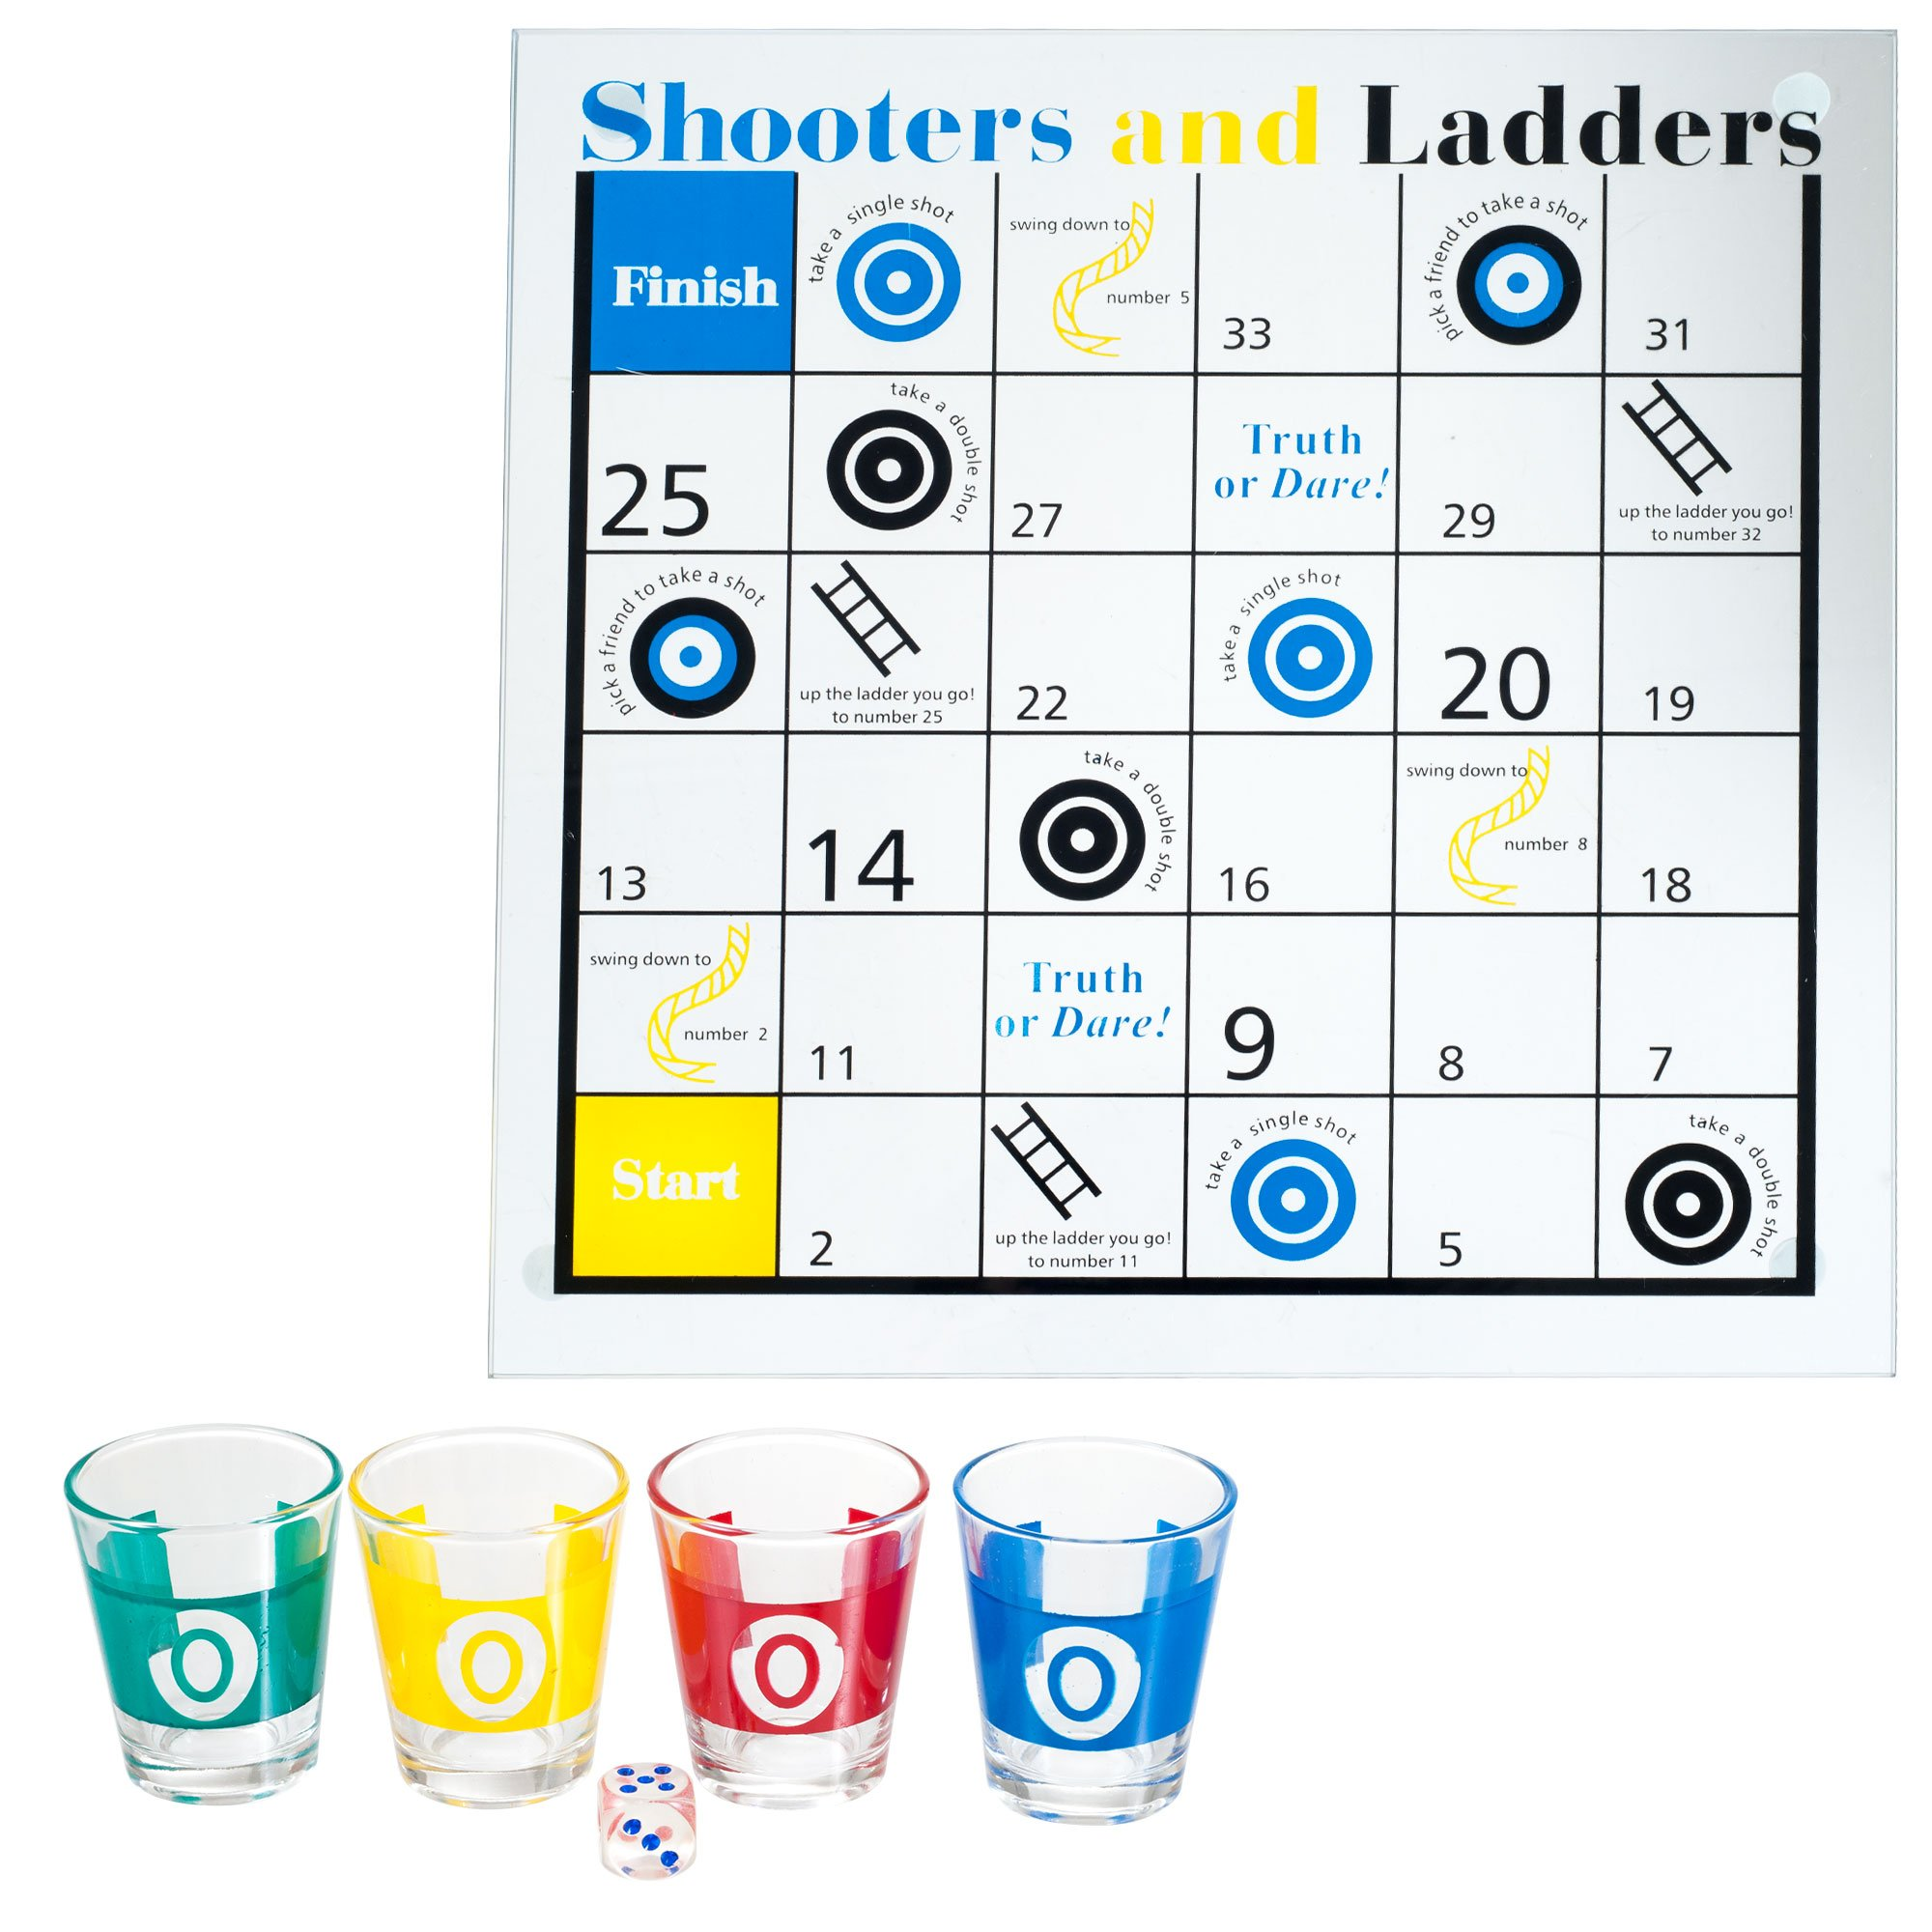 TMG Shooters & Ladders Drinking Game Set - Includes Bonus Deck of Cards!